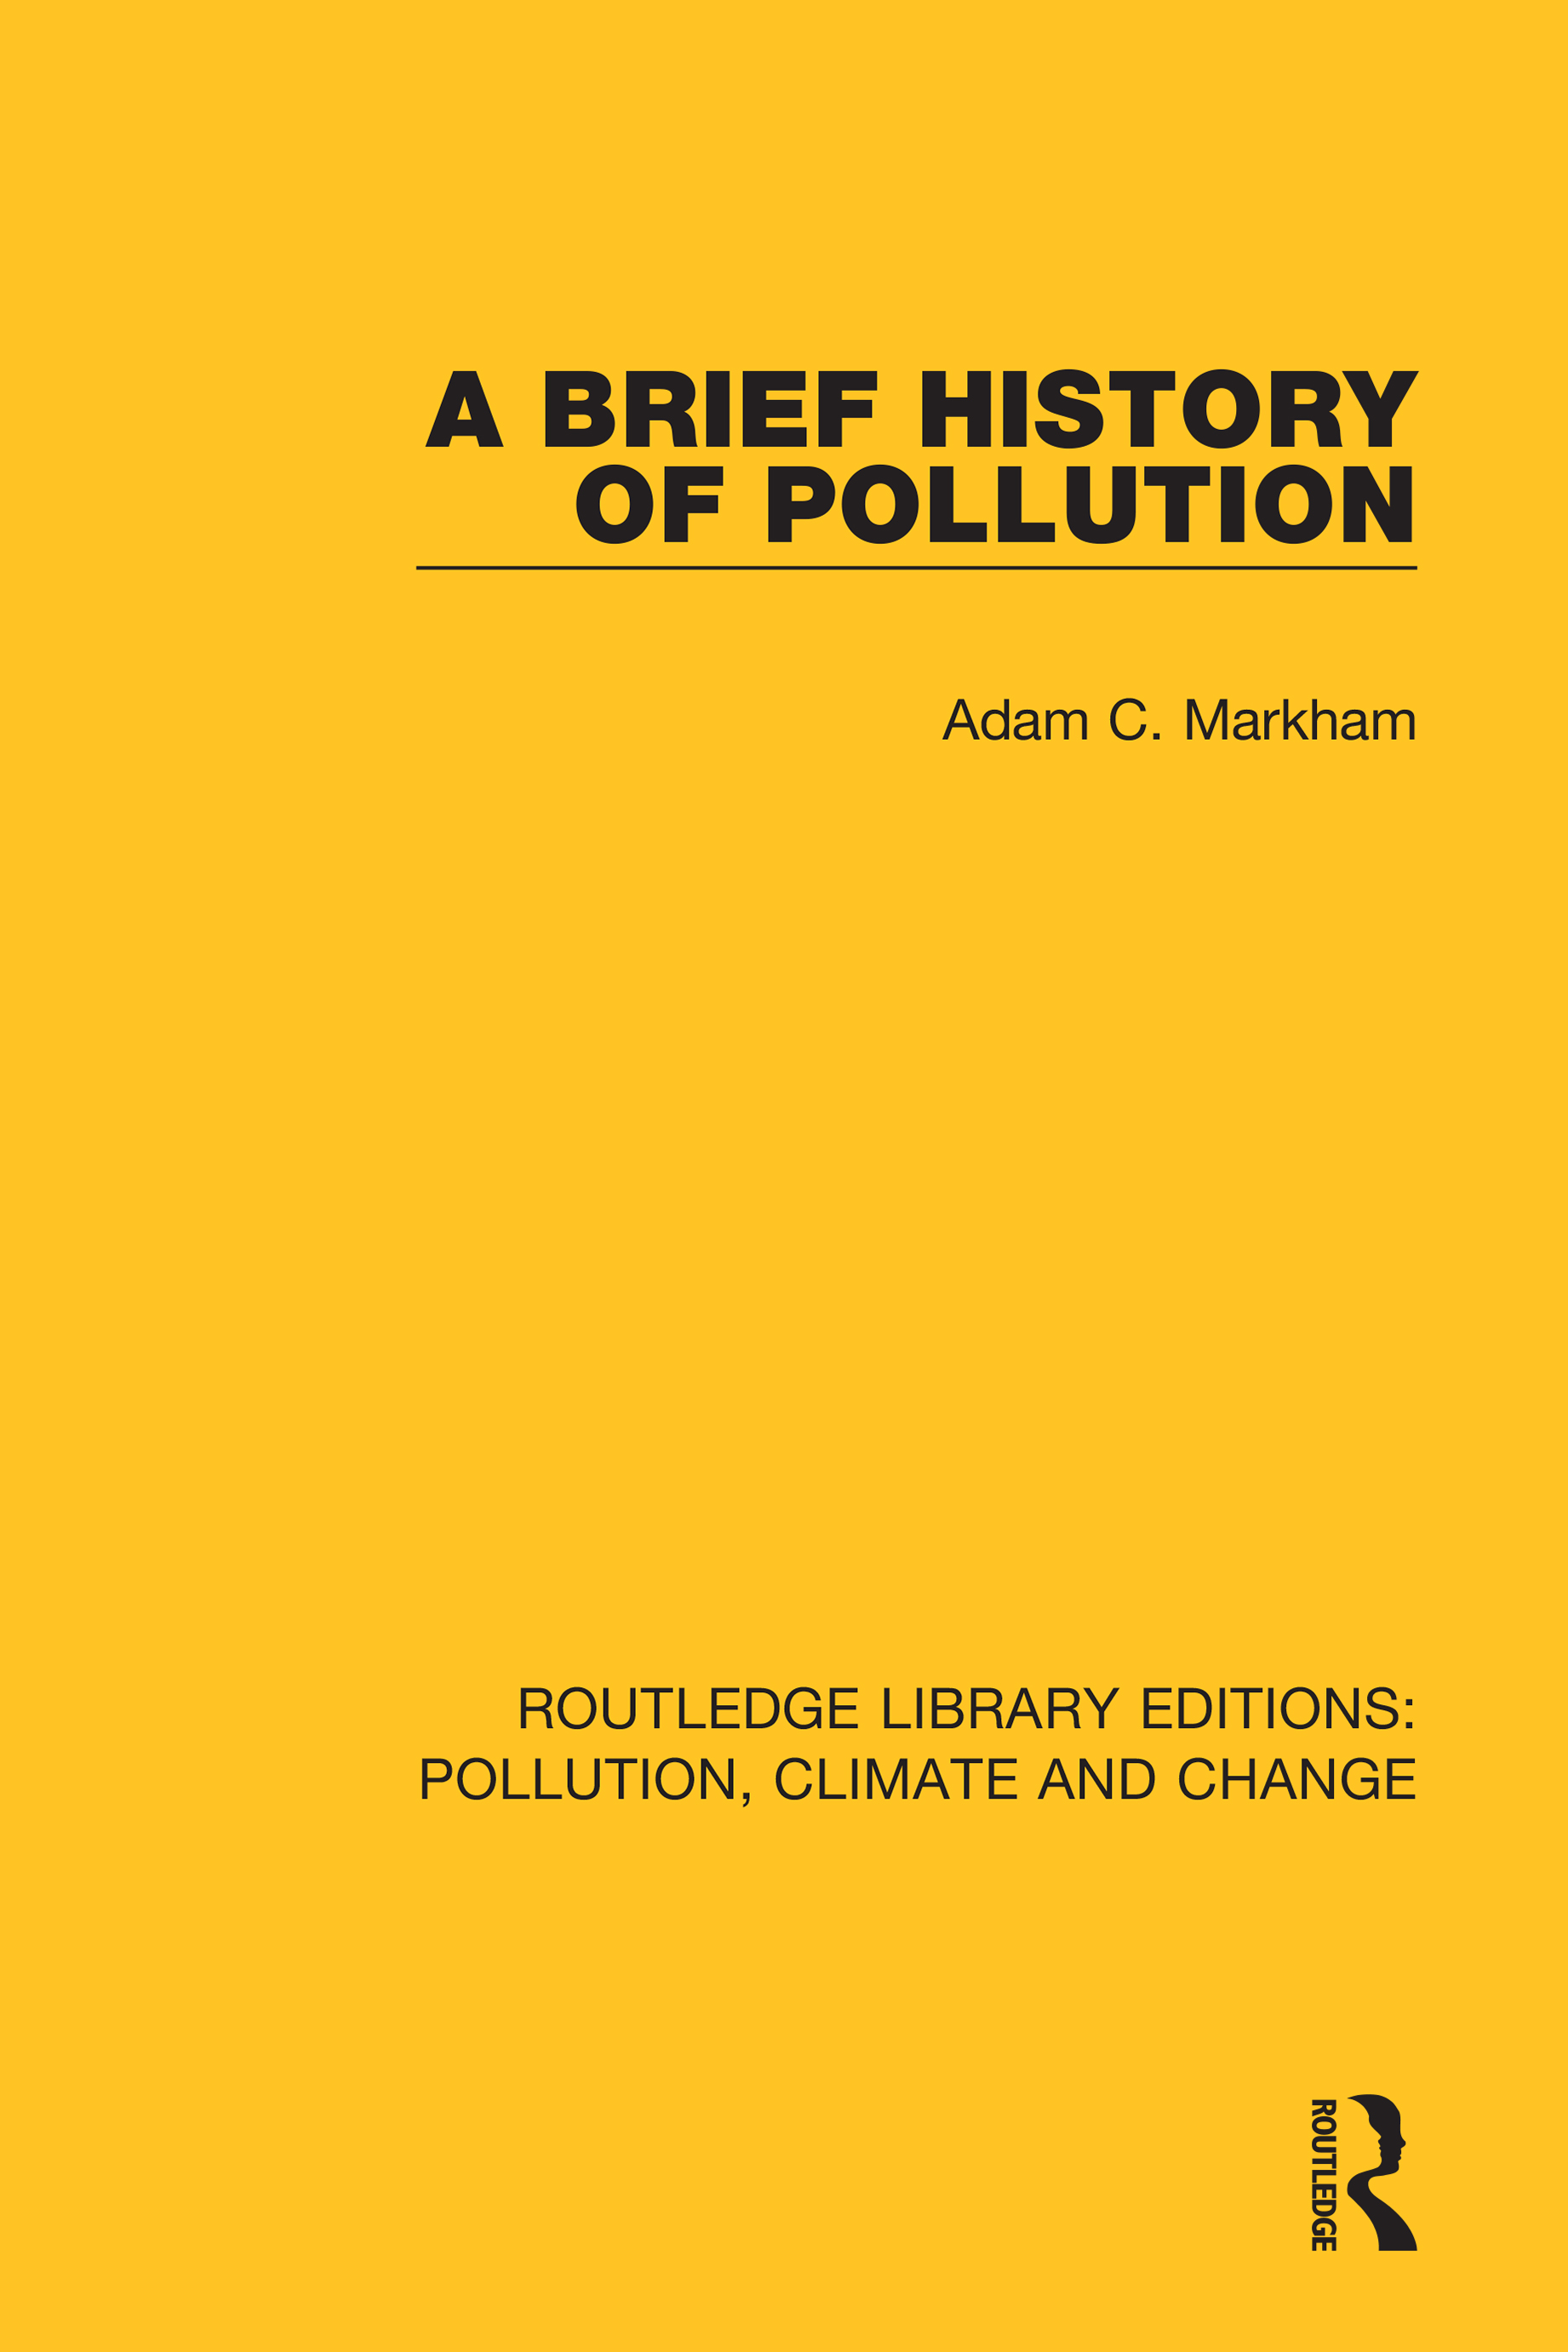 A Brief History of Pollution book cover